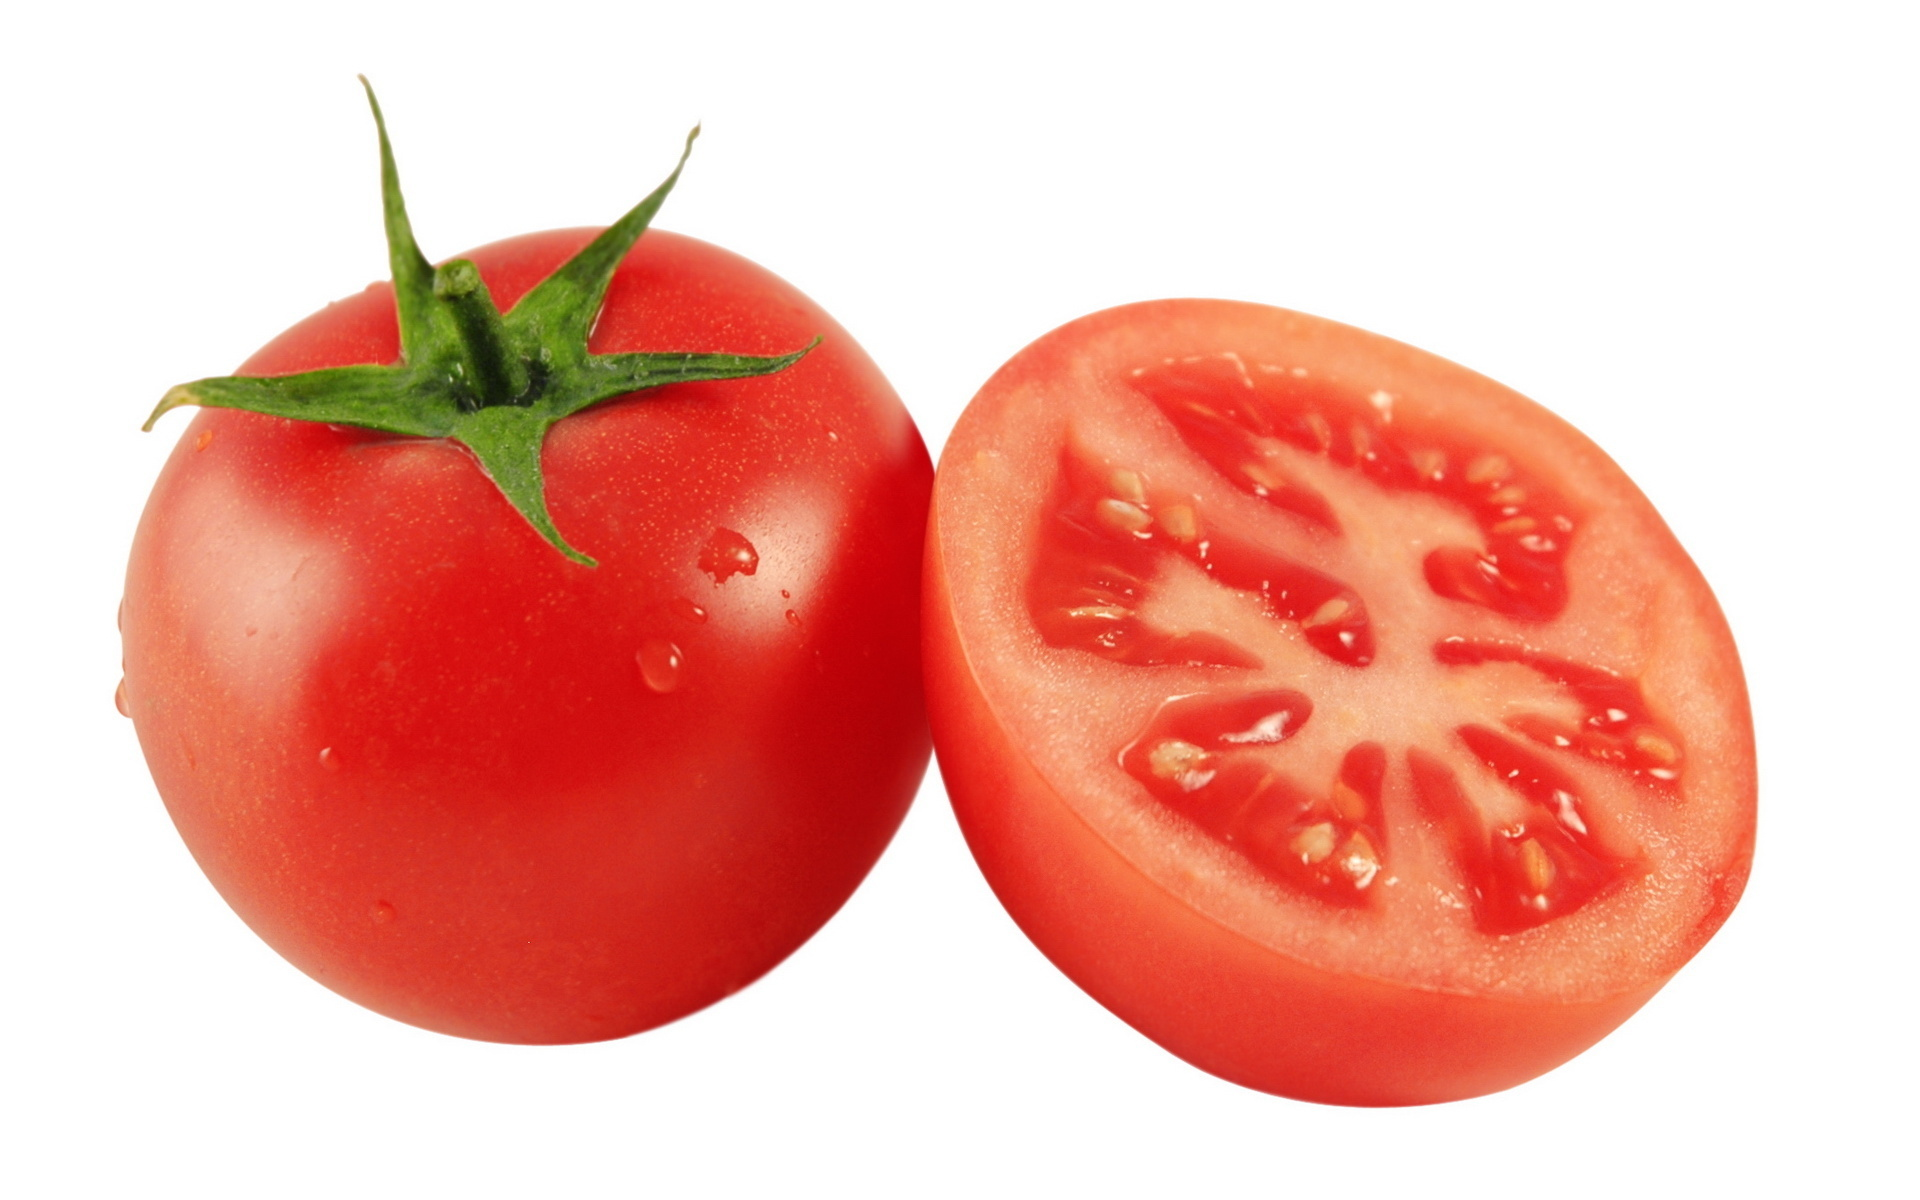 Food Tomato Wallpaper #303641 - Resolution 1920x1200 px